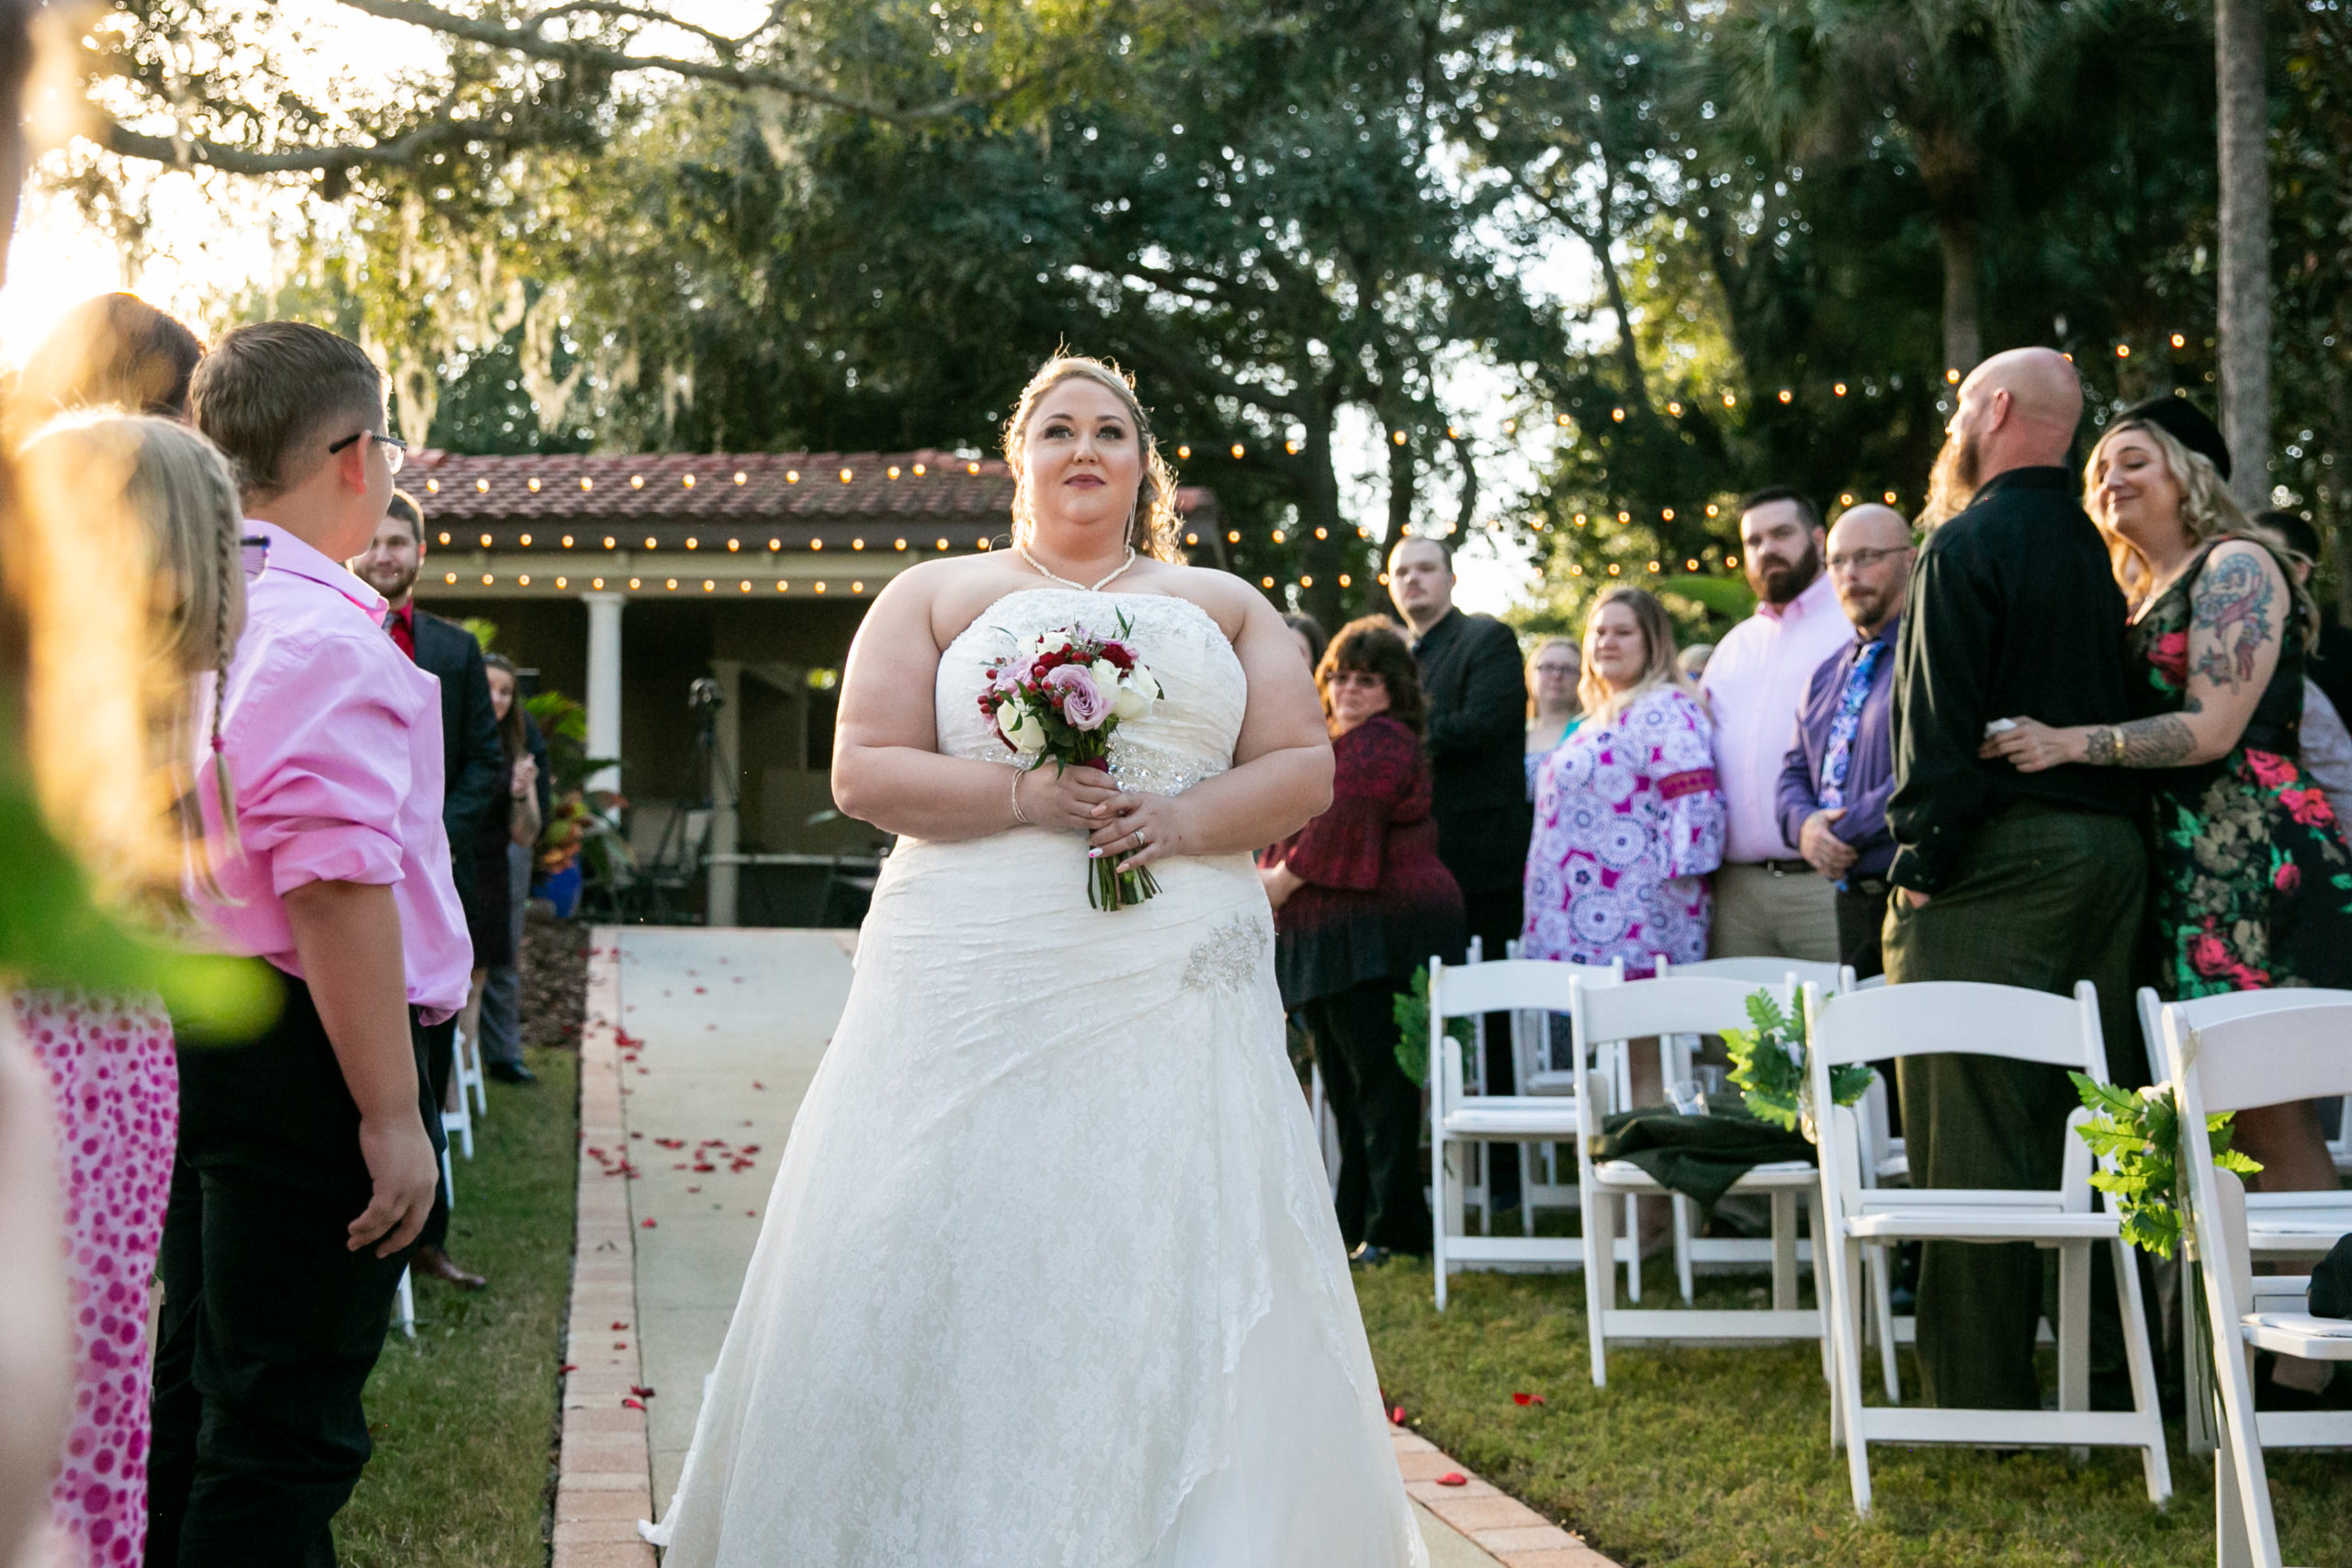 bride walking down the aisle with guests watching ceremony